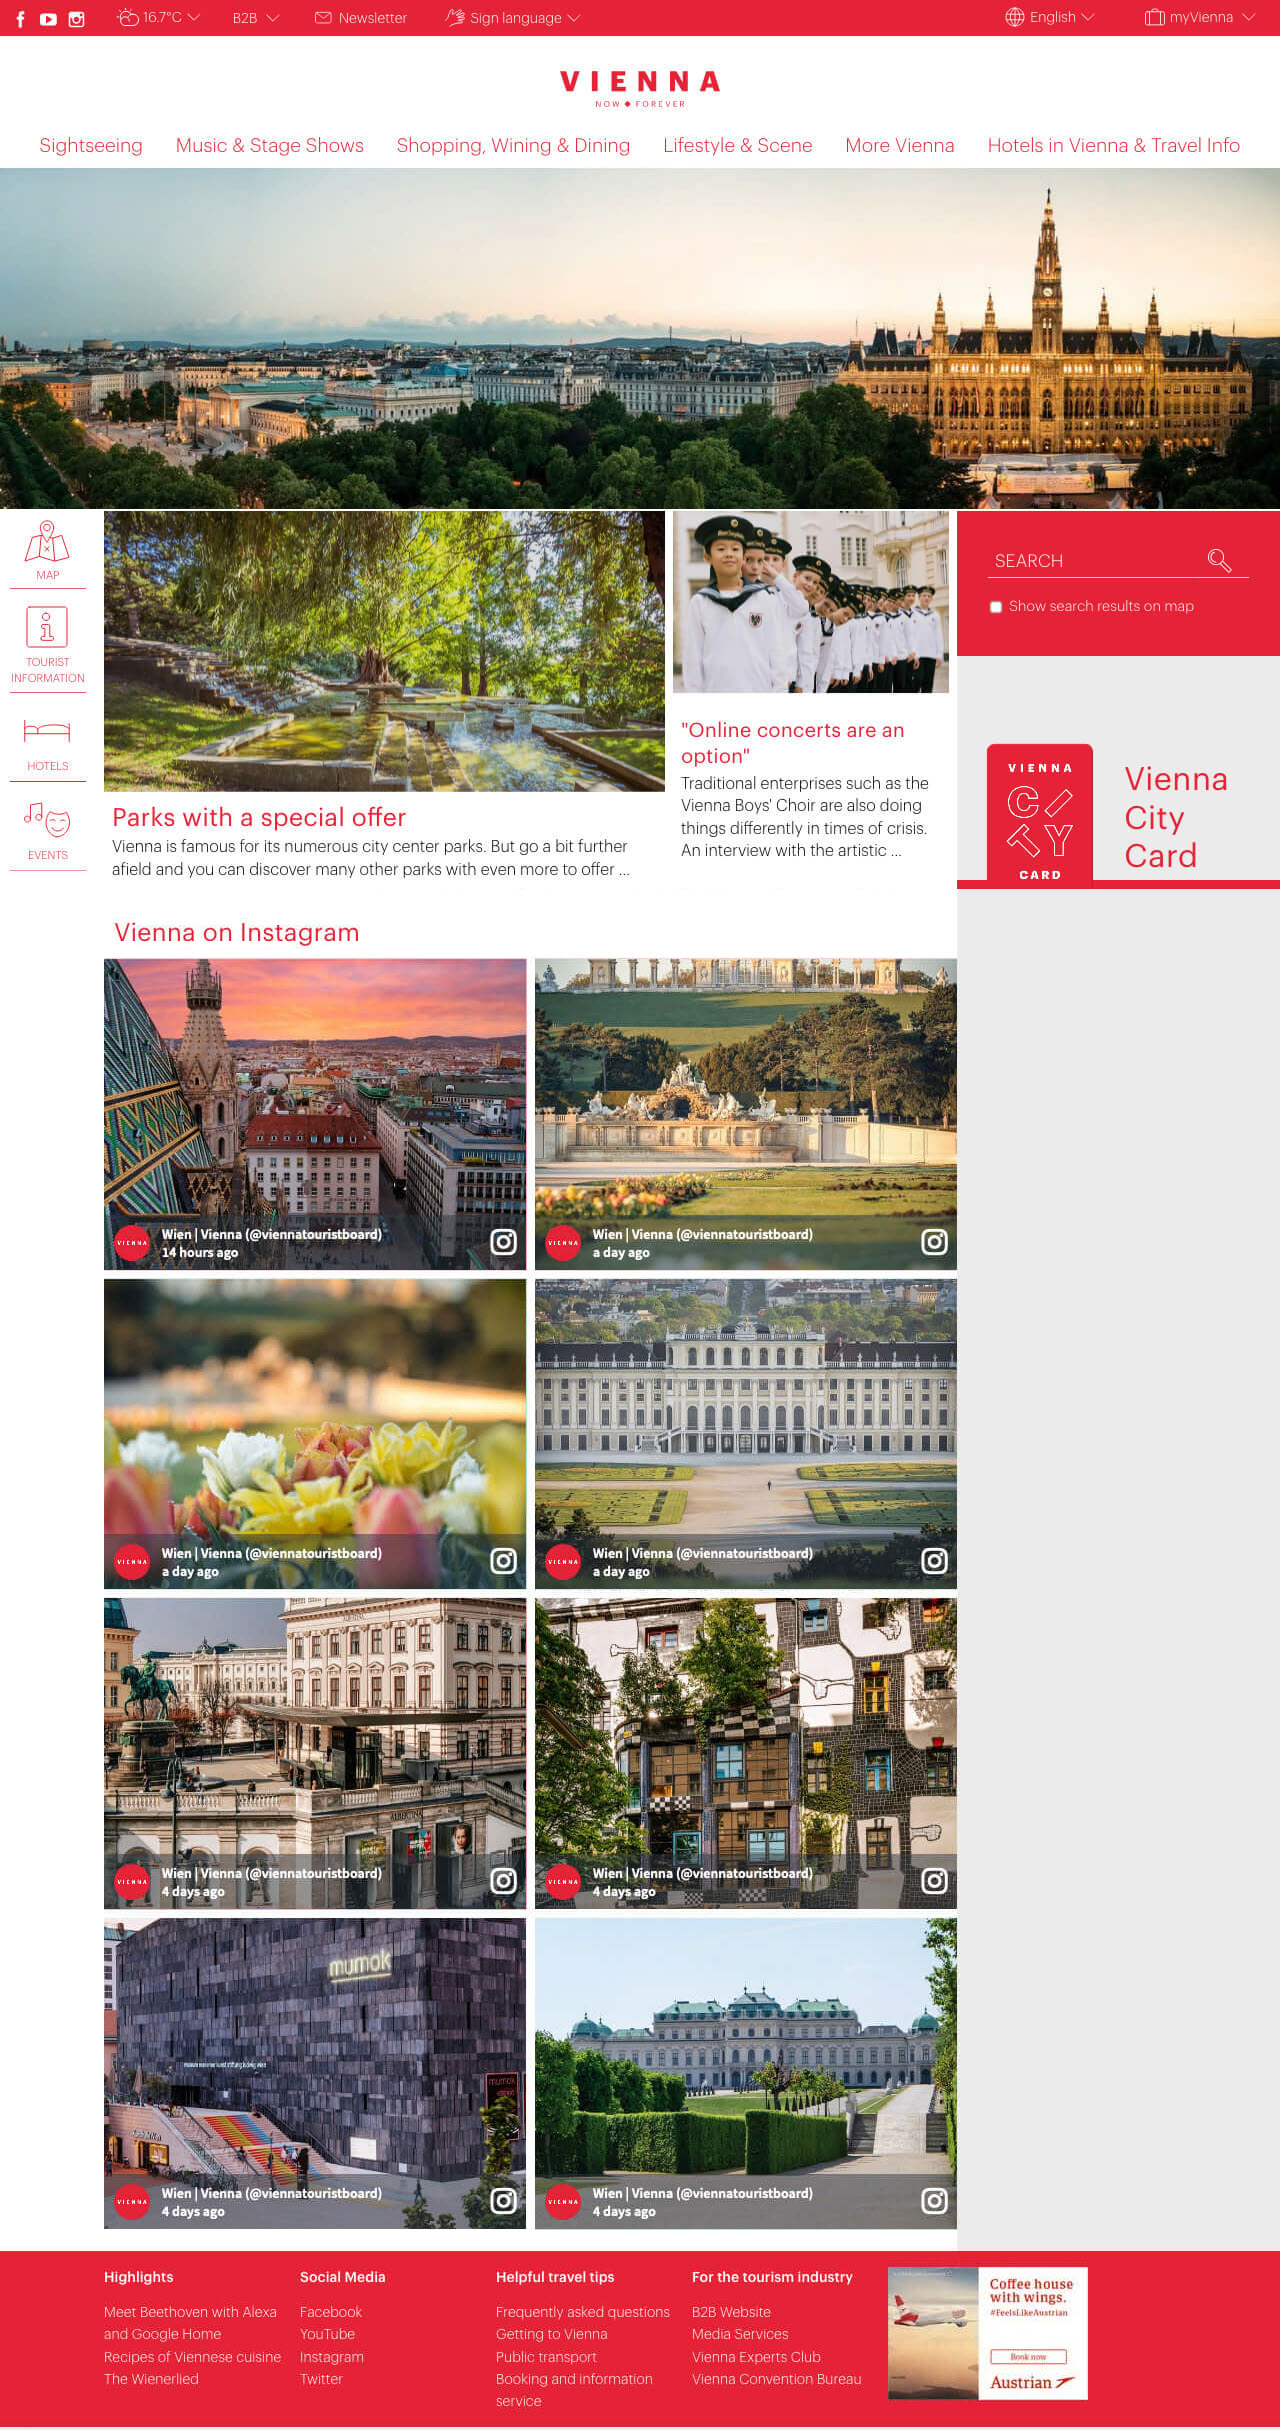 Screenshot of the wien.info website with the social wall prominently embedded and showing beautiful images of Vienna posted on Instagram.